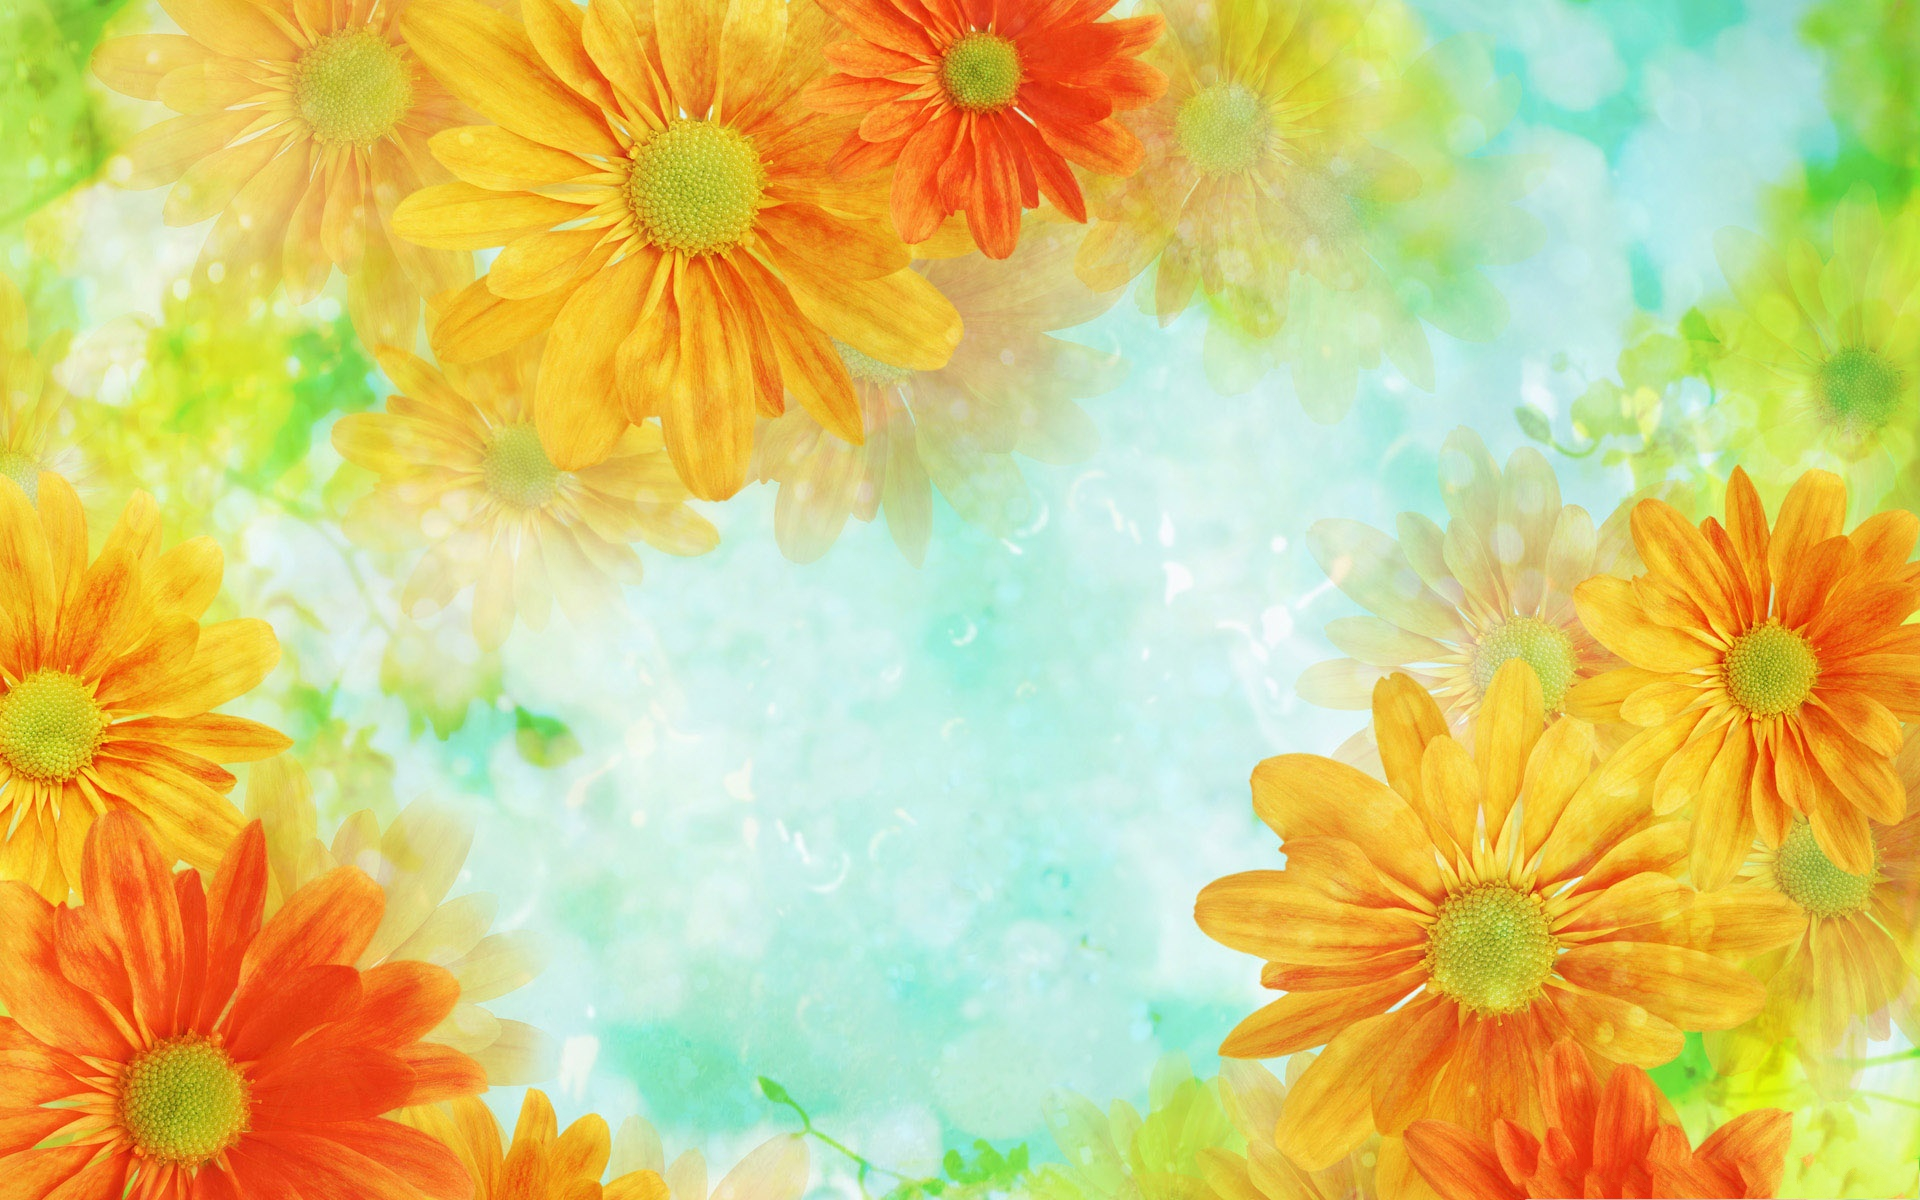 click to free download the wallpaper--Colorful Flowers Picture, Orange Flowers in Bloom, Light Green Background 1920X1200 free wallpaper download